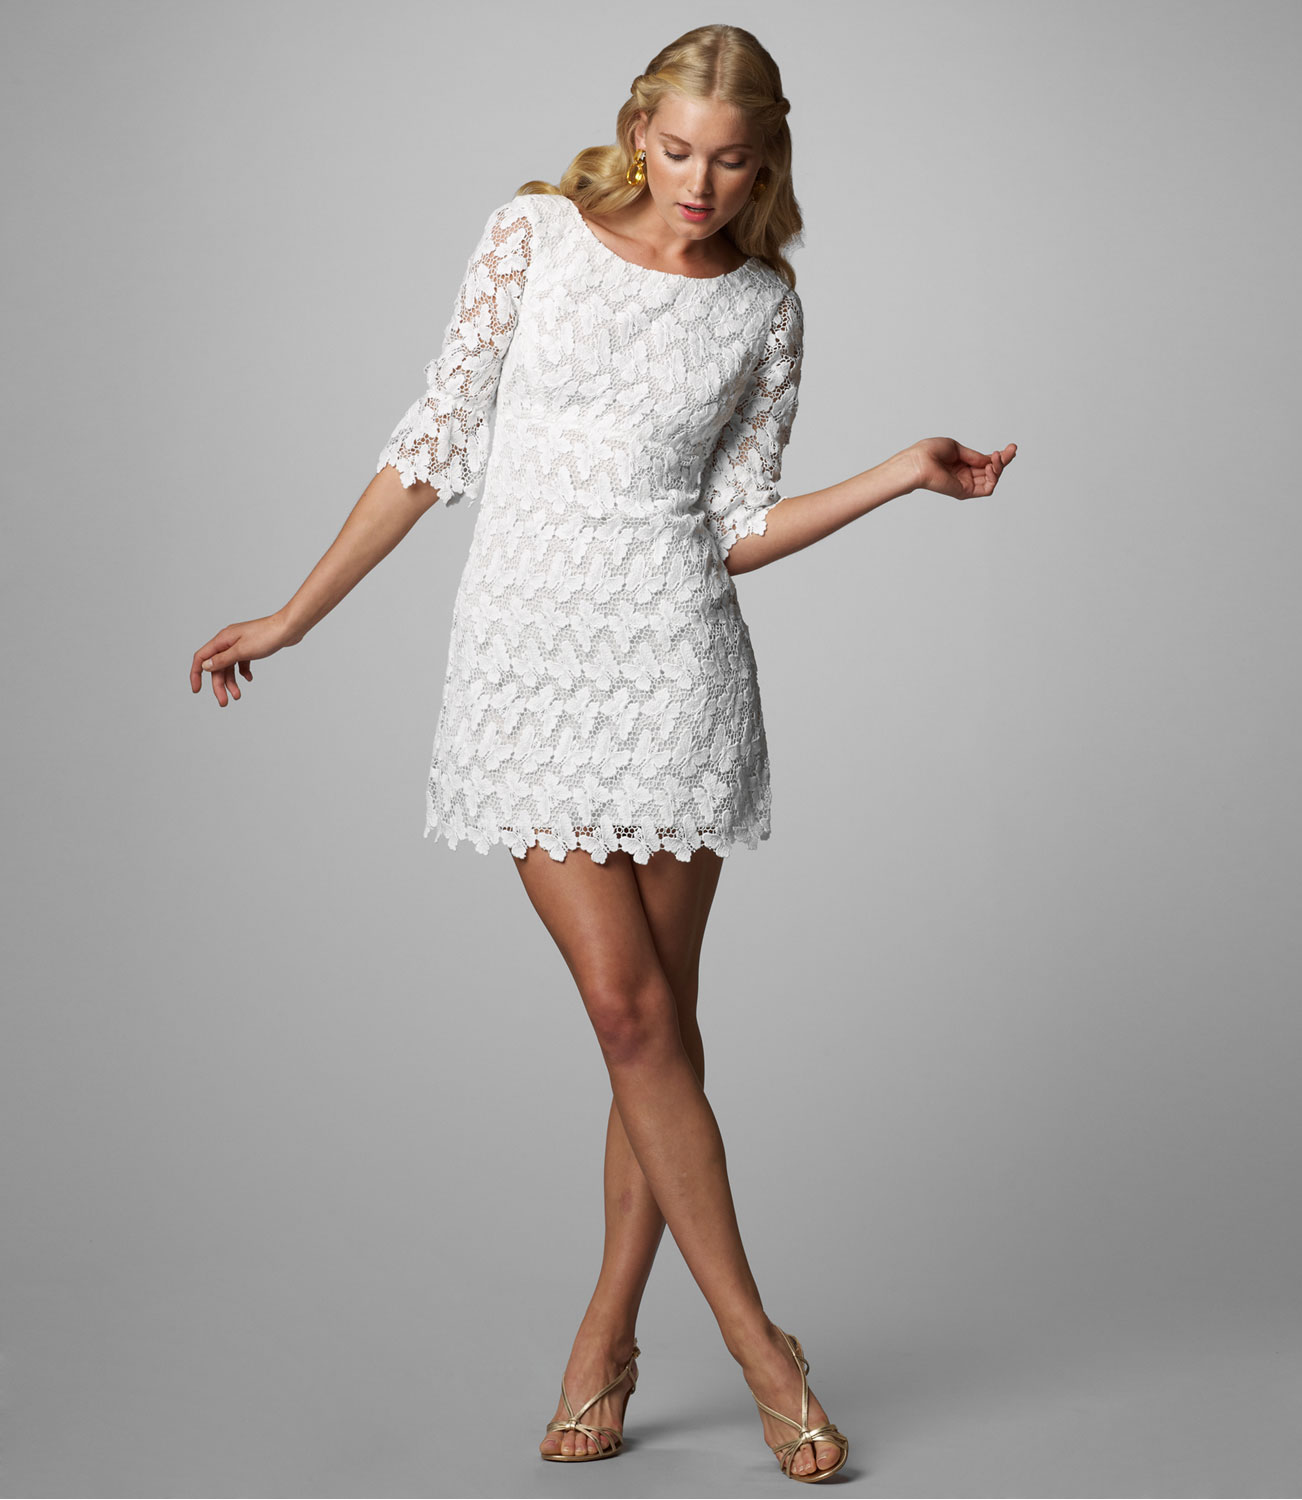 White Lace Dress And Shoes